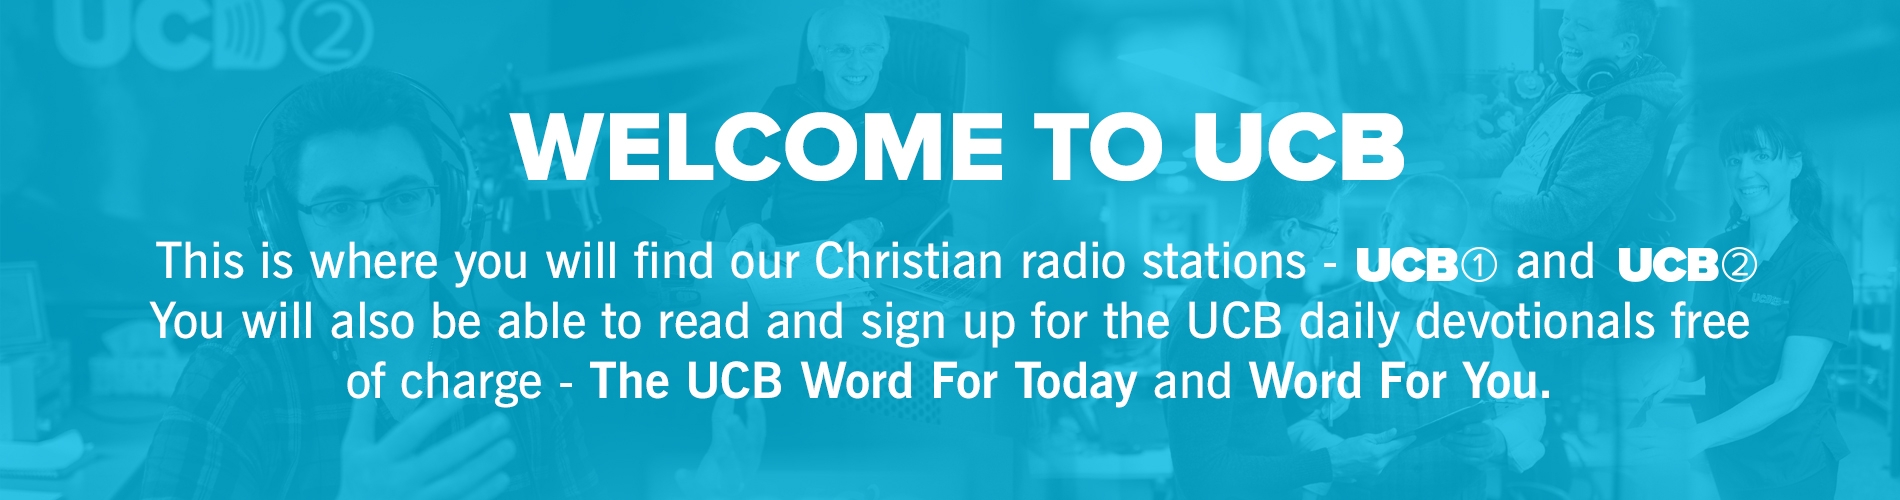 Welcome to the UCB homepage, from here you can find our two radio stations UCB 1 and UCB 2 and also read and sign up to receive the UCB Word For Today or Word For You devotionals